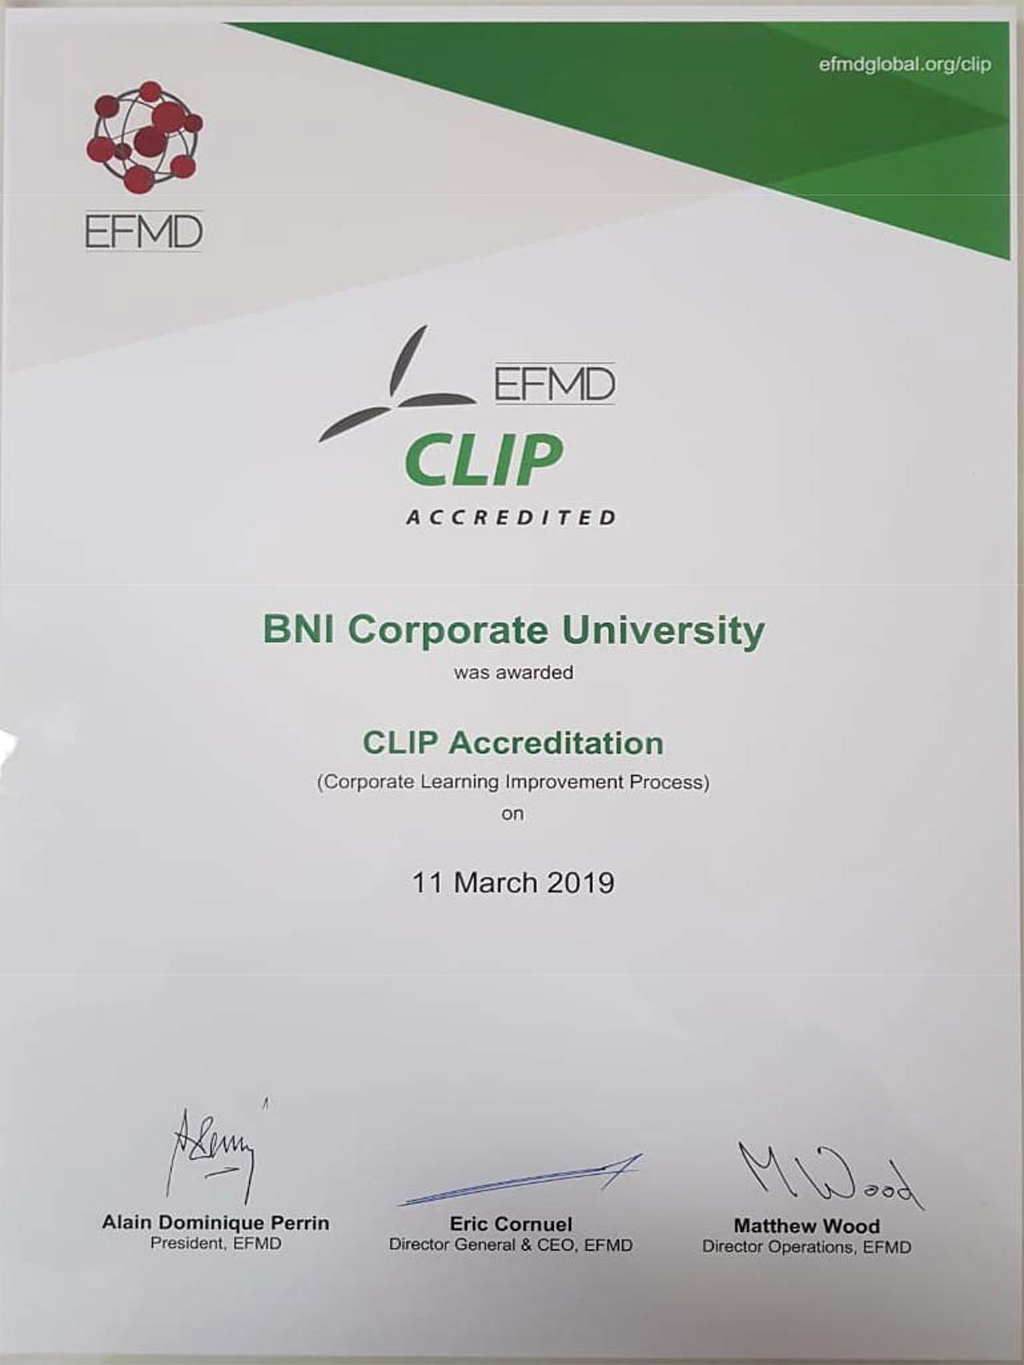 CLIP Accreditation (Corporate Learning Improvement Process)